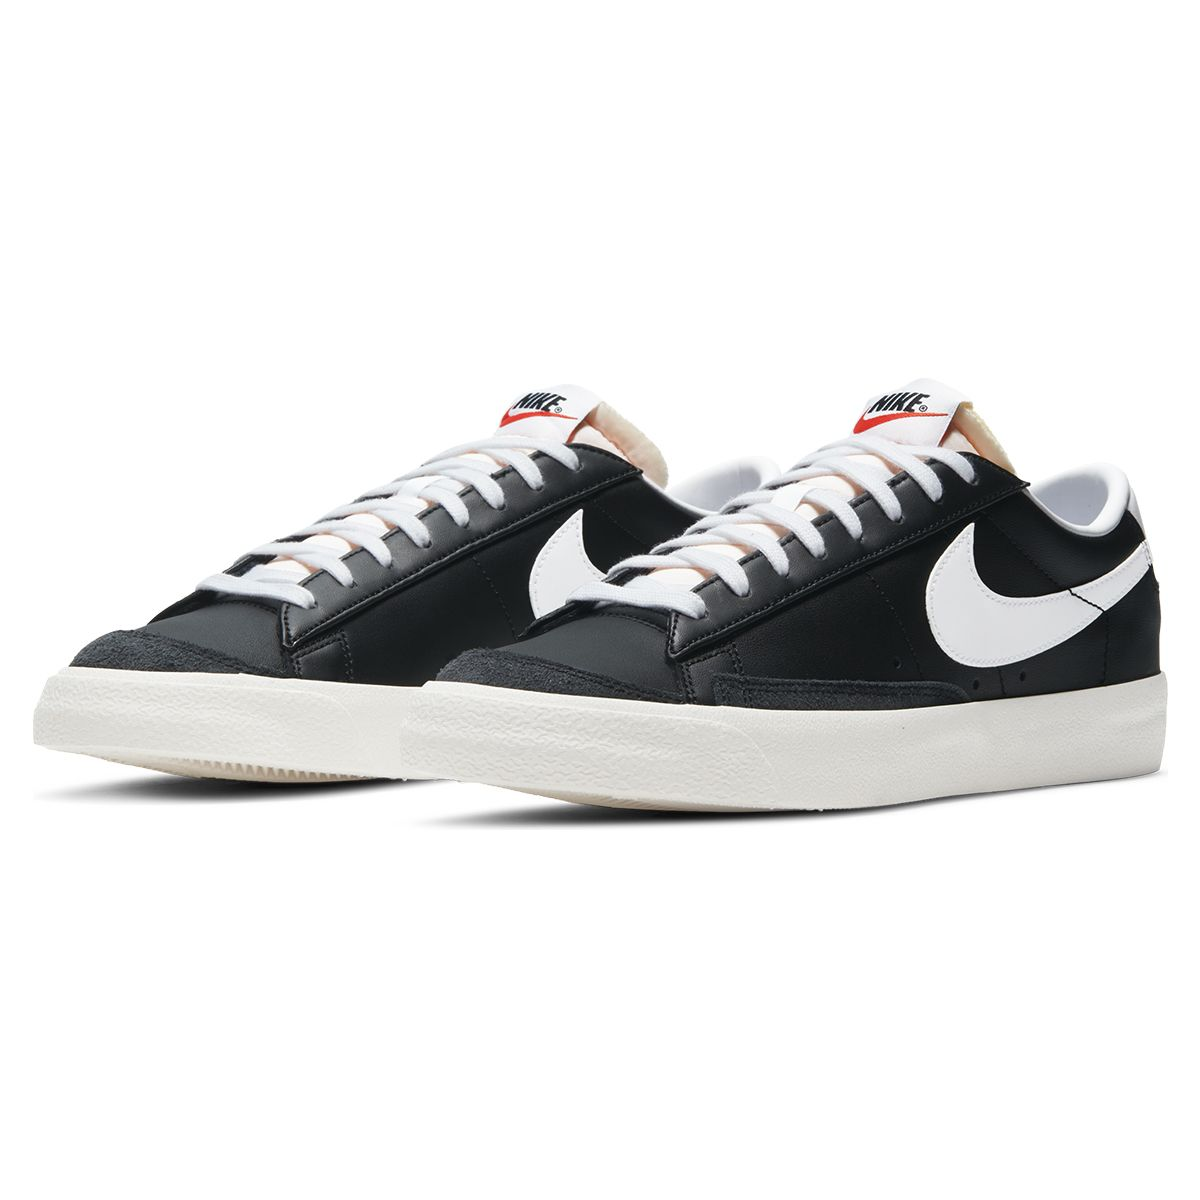 NIKE BLAZER LOW '77 VNTG / 001:BLACK-WHITE-SAIL-BLACK